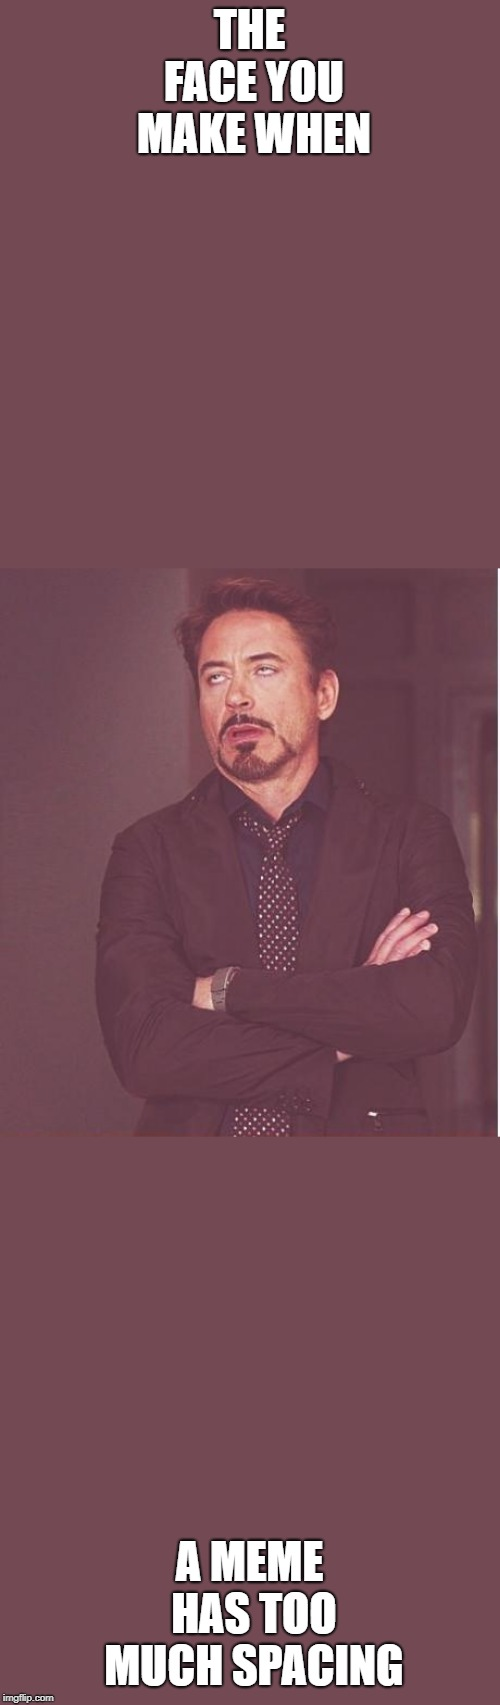 Face You Make Robert Downey Jr | THE FACE YOU MAKE WHEN A MEME HAS TOO MUCH SPACING | image tagged in memes,face you make robert downey jr | made w/ Imgflip meme maker